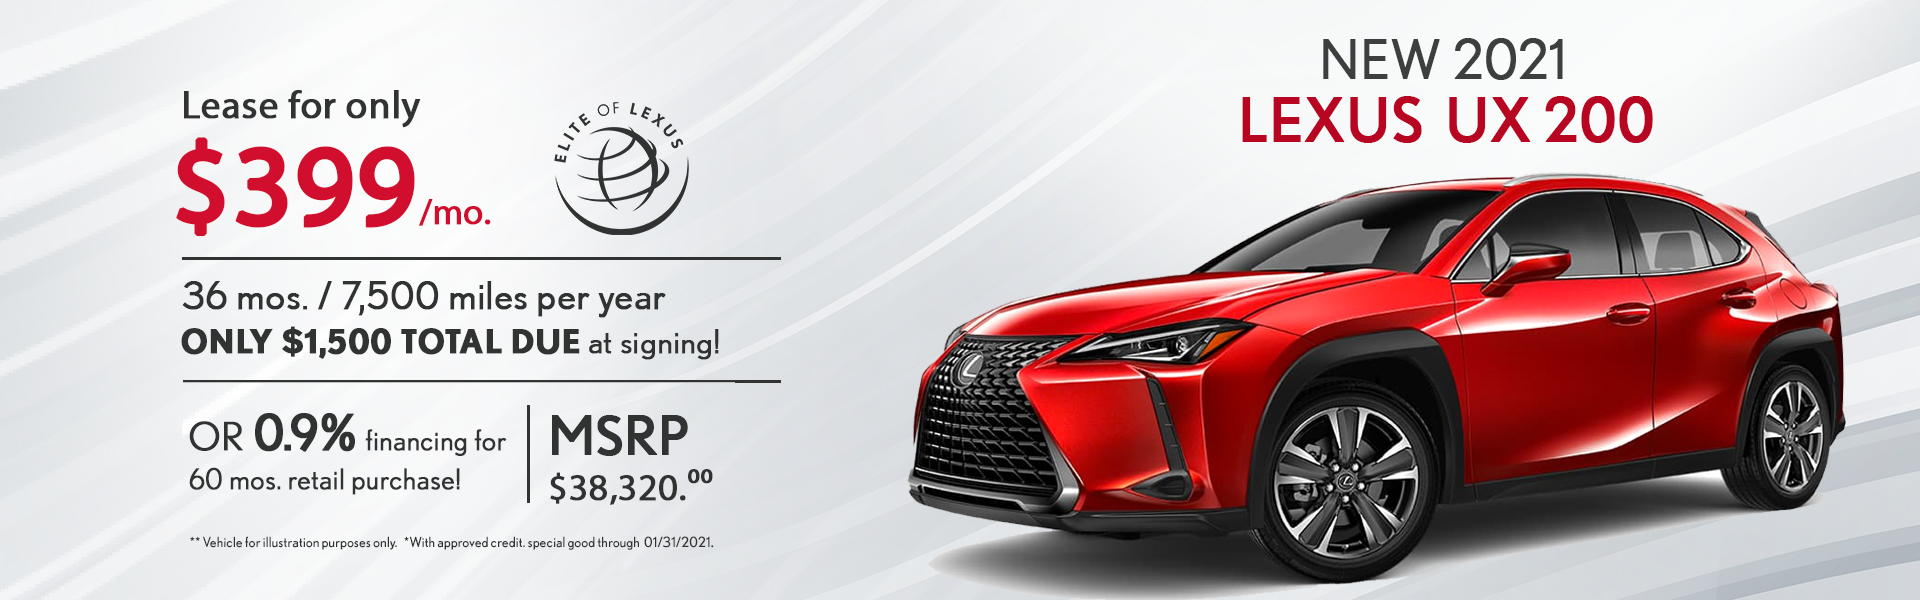 January Lexus Lease Specials UX 200